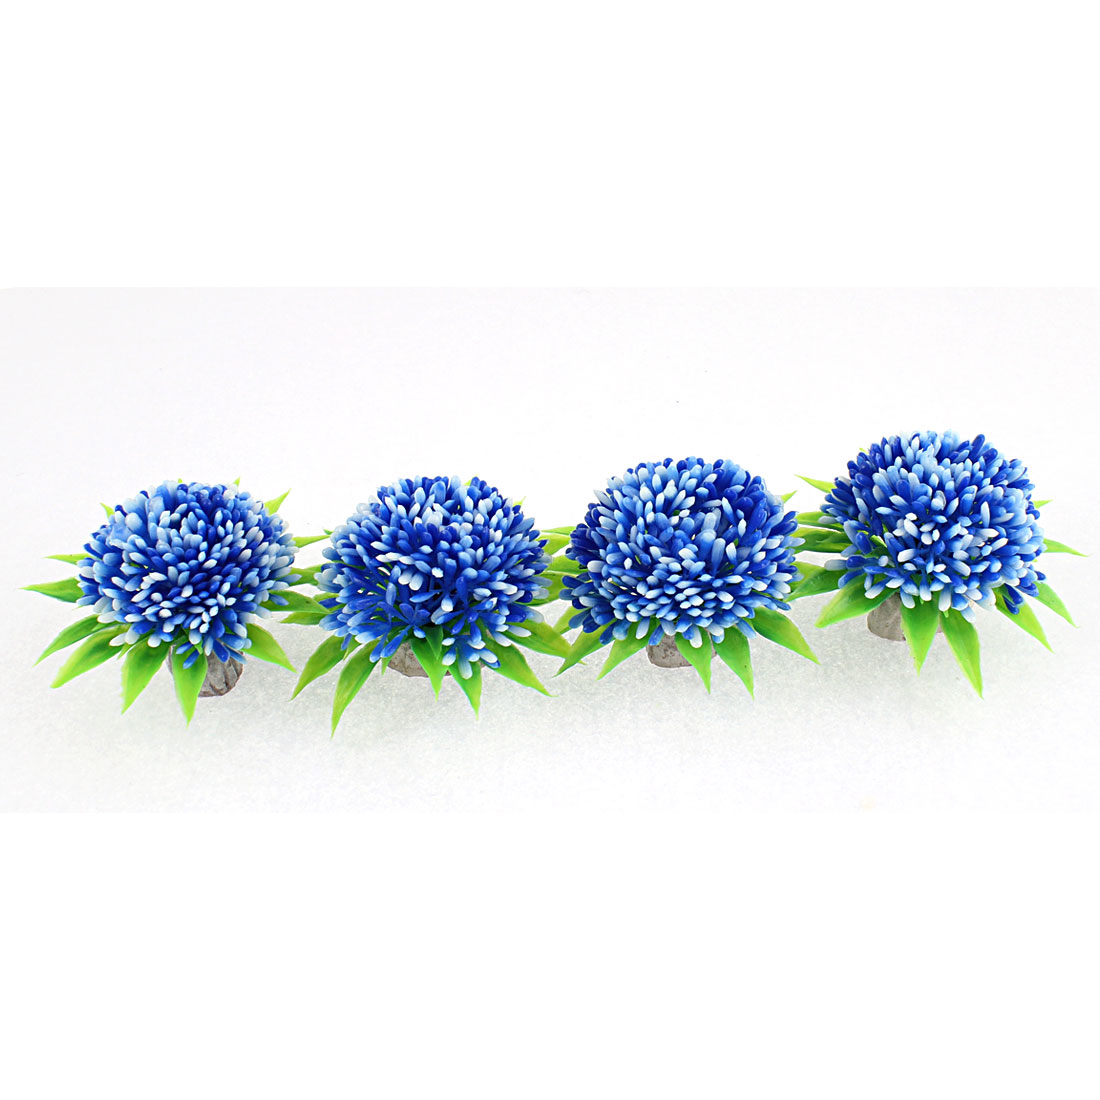 Aquarium Plastic Manmade Round Shaped Water Flower Plant Grass Decor 4 Pcs